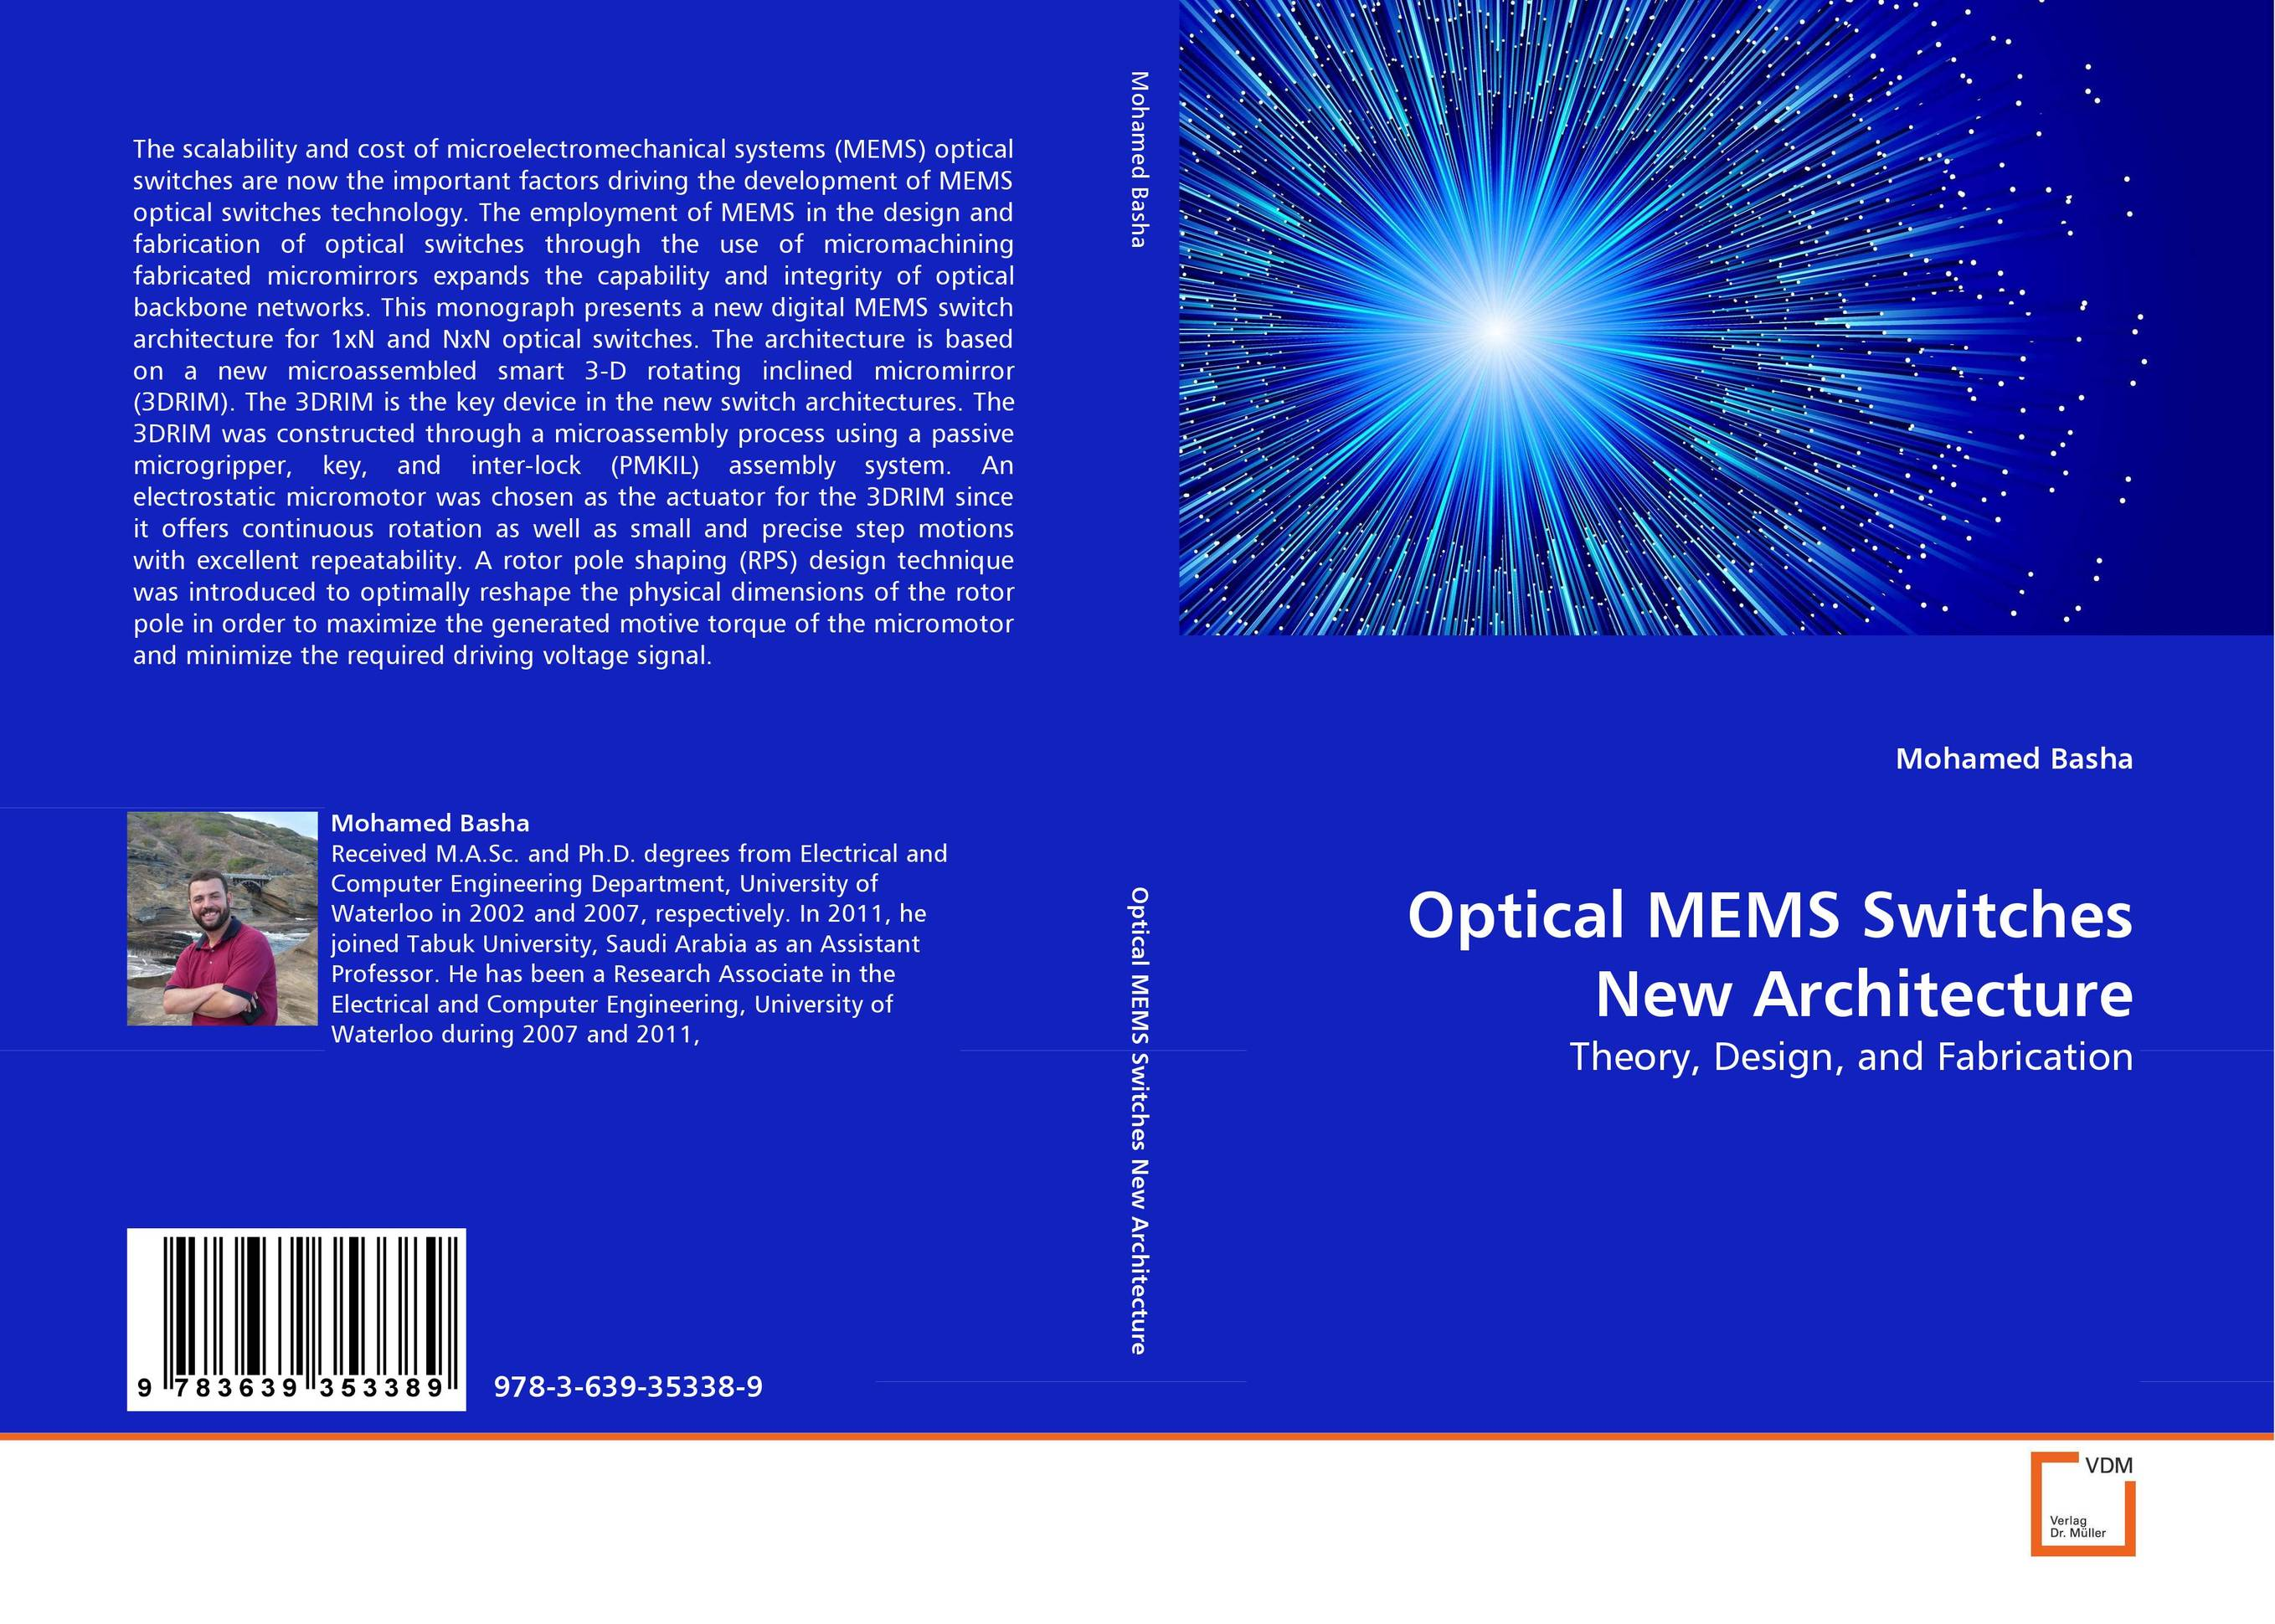 Optical MEMS Switches New Architecture купить